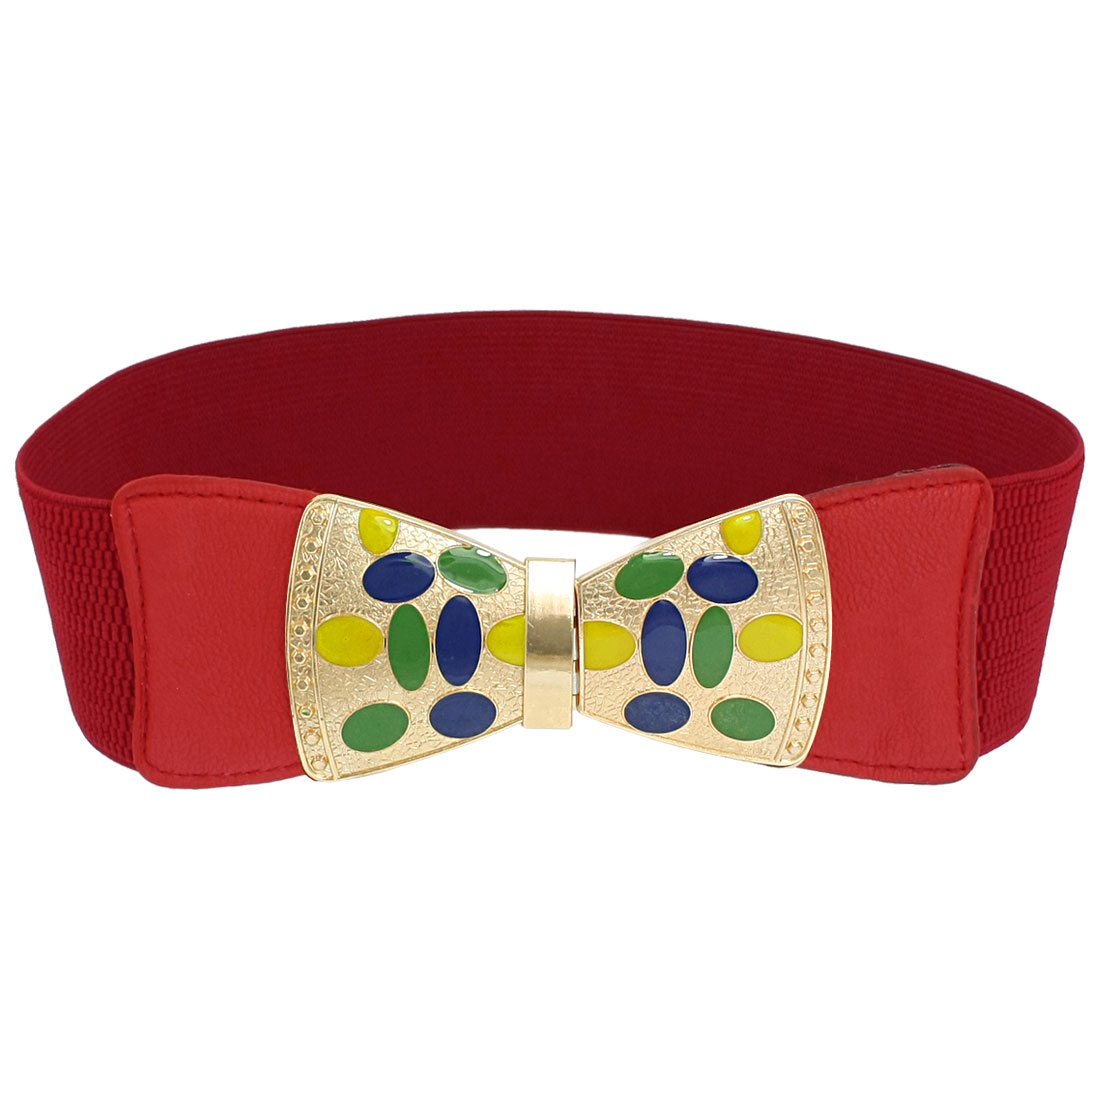 Metal Bowknot Interlocking Buckle Cinch Band Waist Belt Red